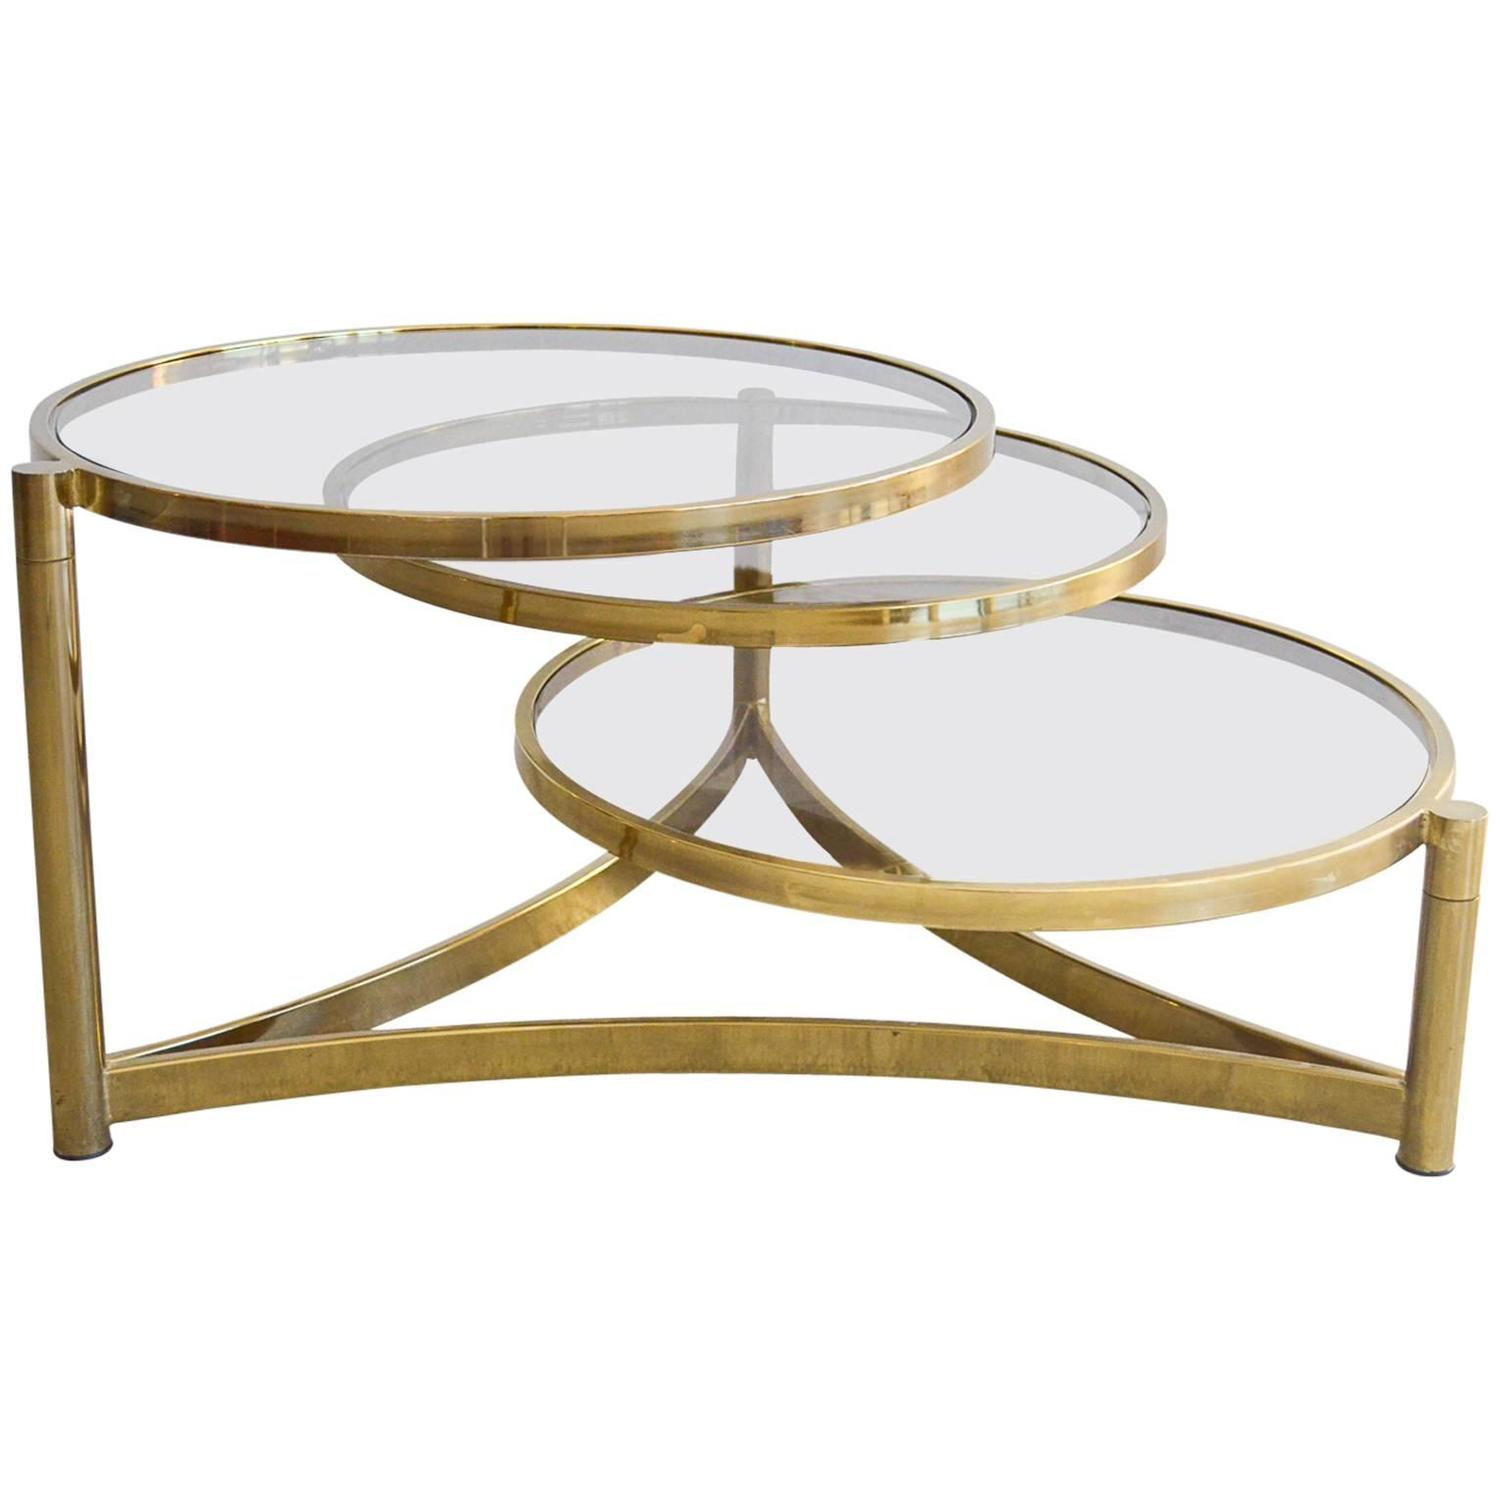 Milo Baughman Tri Level Brass and Glass Swivel Coffee Table at 1stdibs